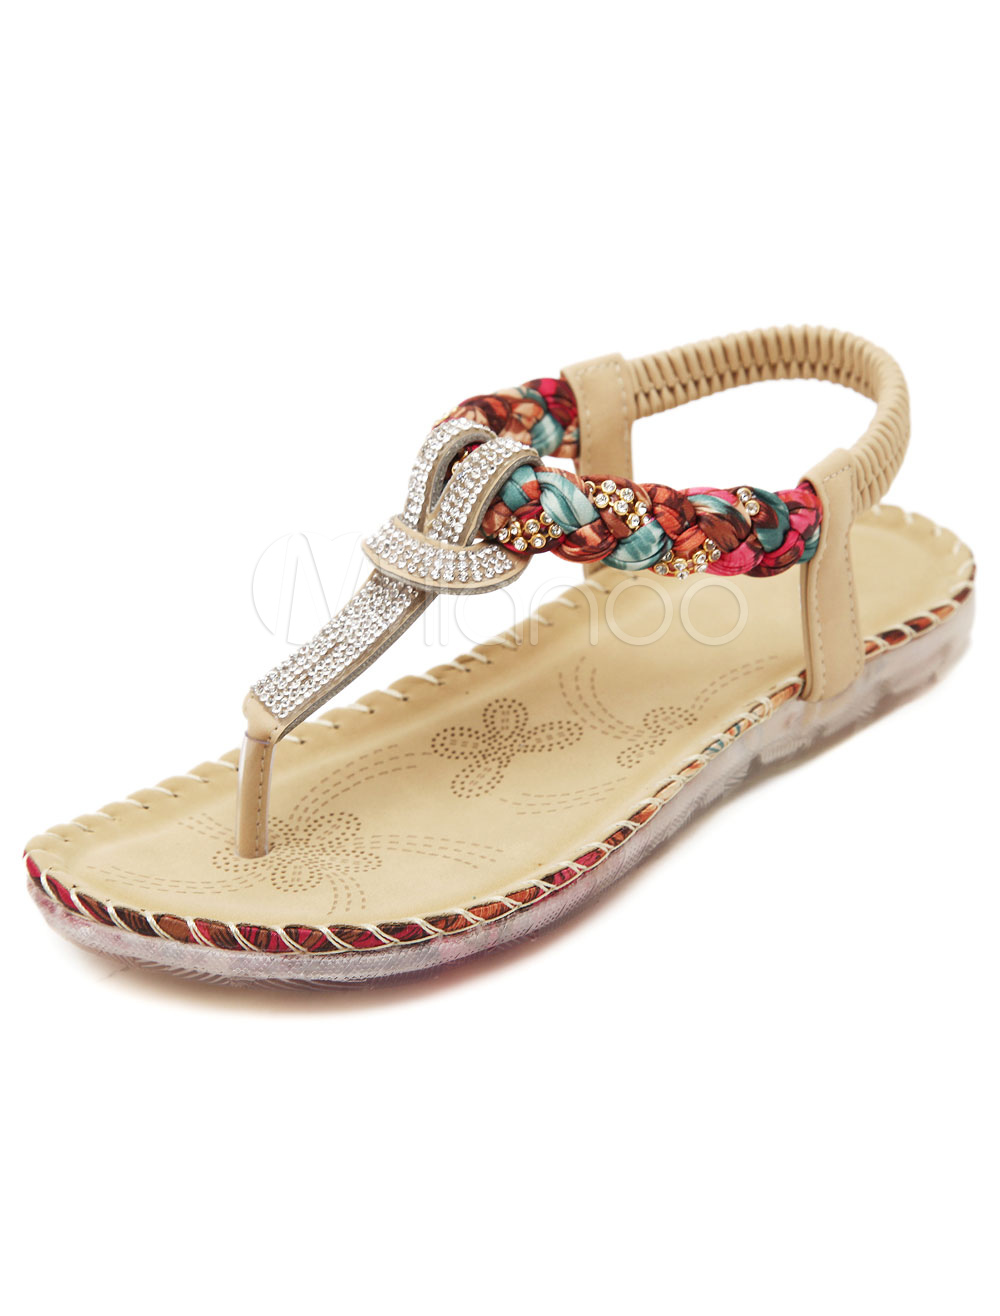 Buy Apricot Flip Flops Boho Flat Sandals Thong Rhinestone Sandal Shoes for Women for $26.09 in Milanoo store